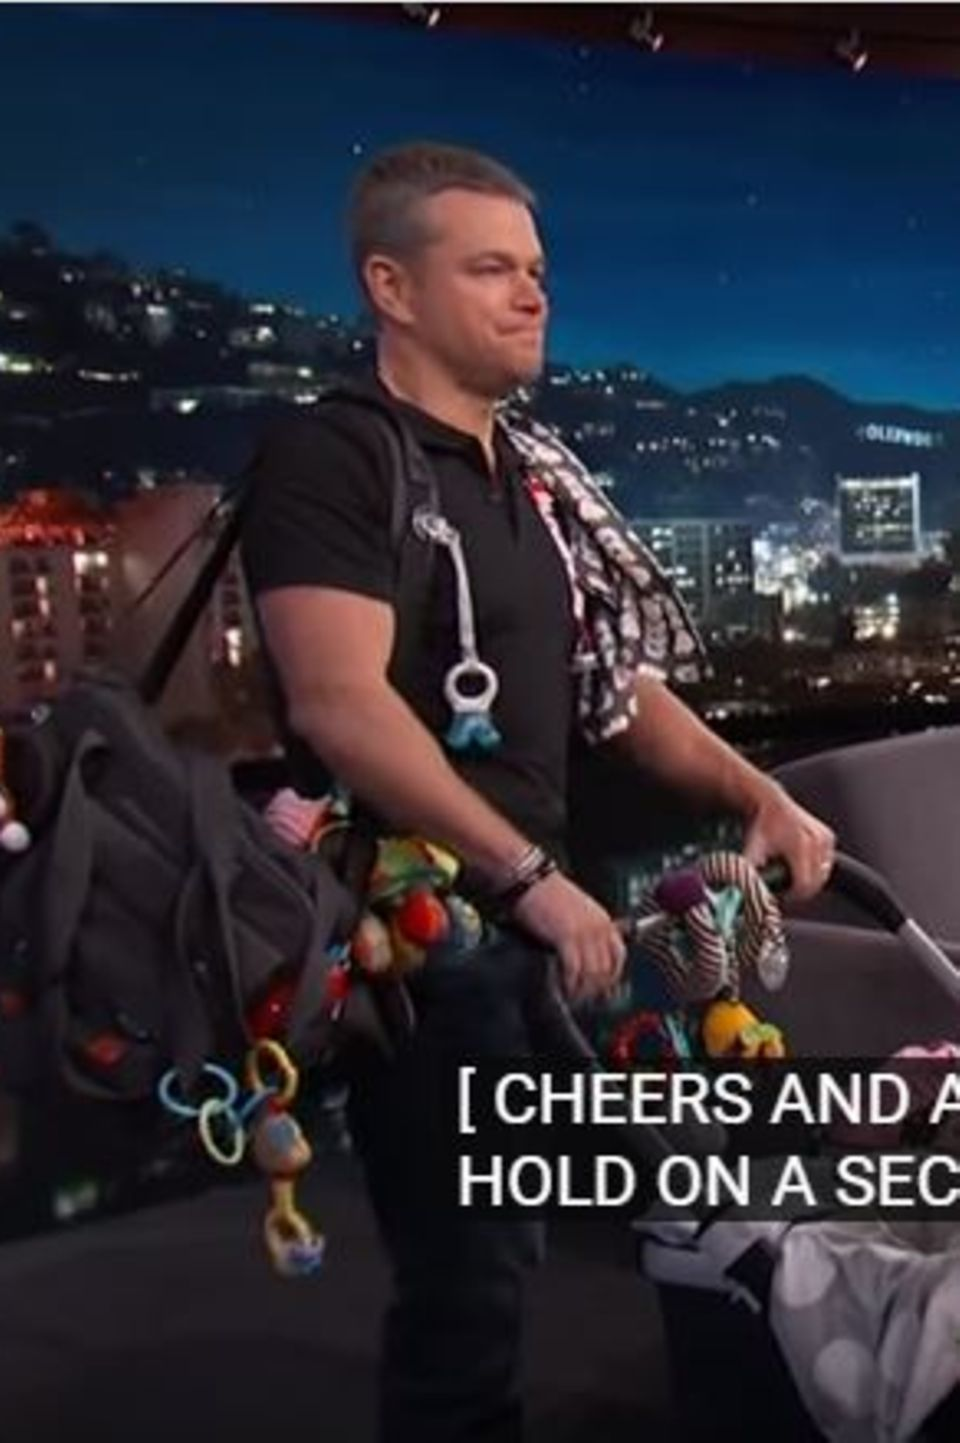 Matt Damon, George Clooney, Jimmy Kimmel